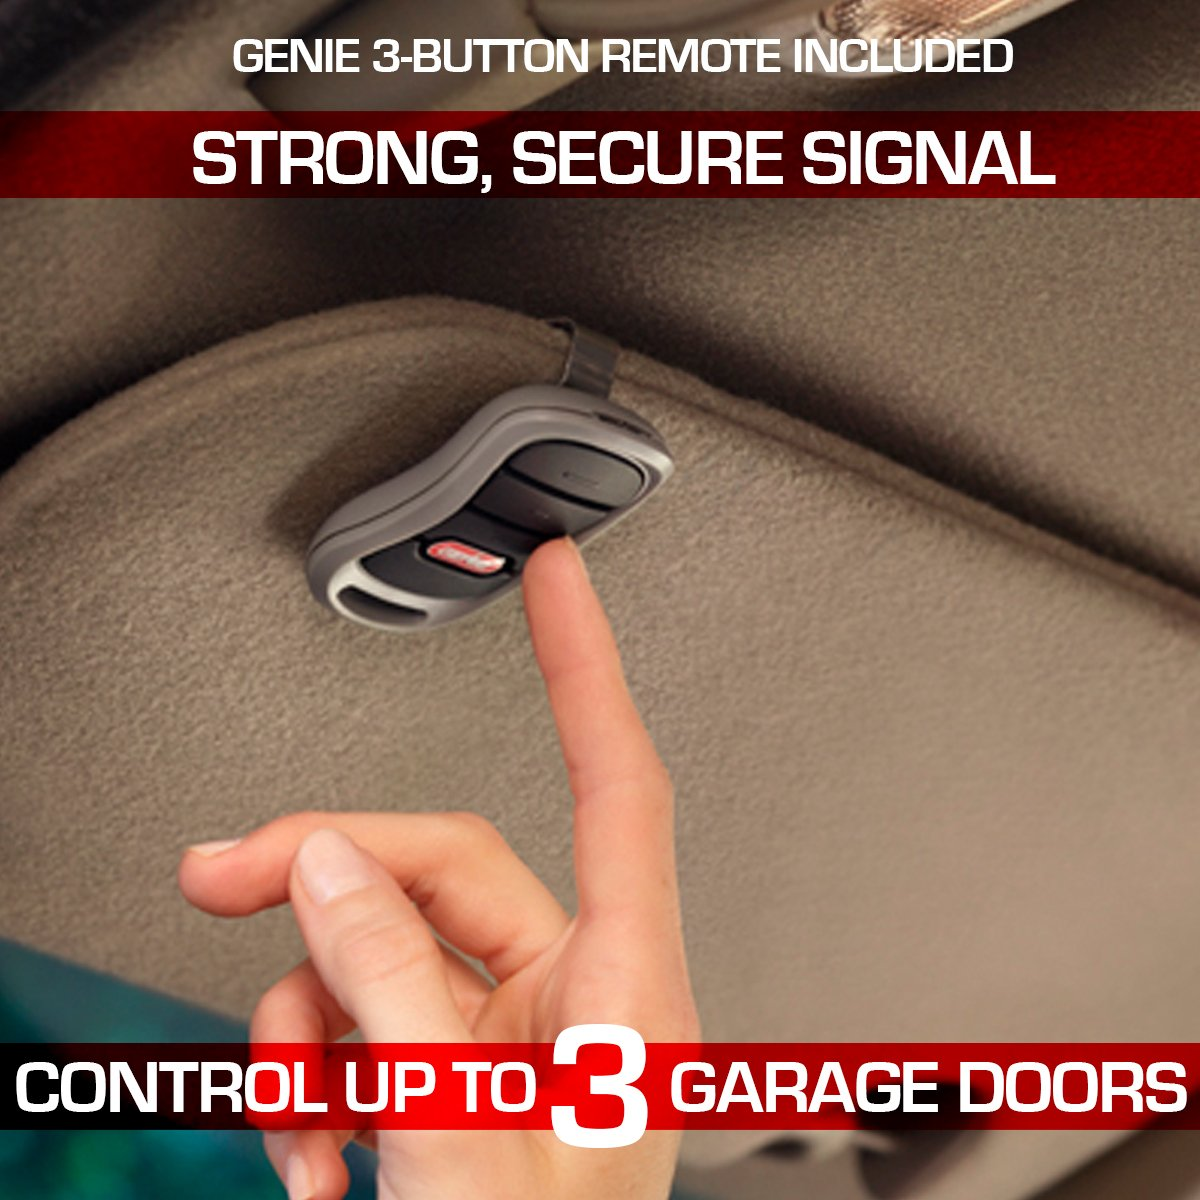 Genie GIRUD-1T Alleviates Frequency Interference in Garage Door Opener Remotes Upgrades Most Major Brands to Intellicode Security, Black by Genie